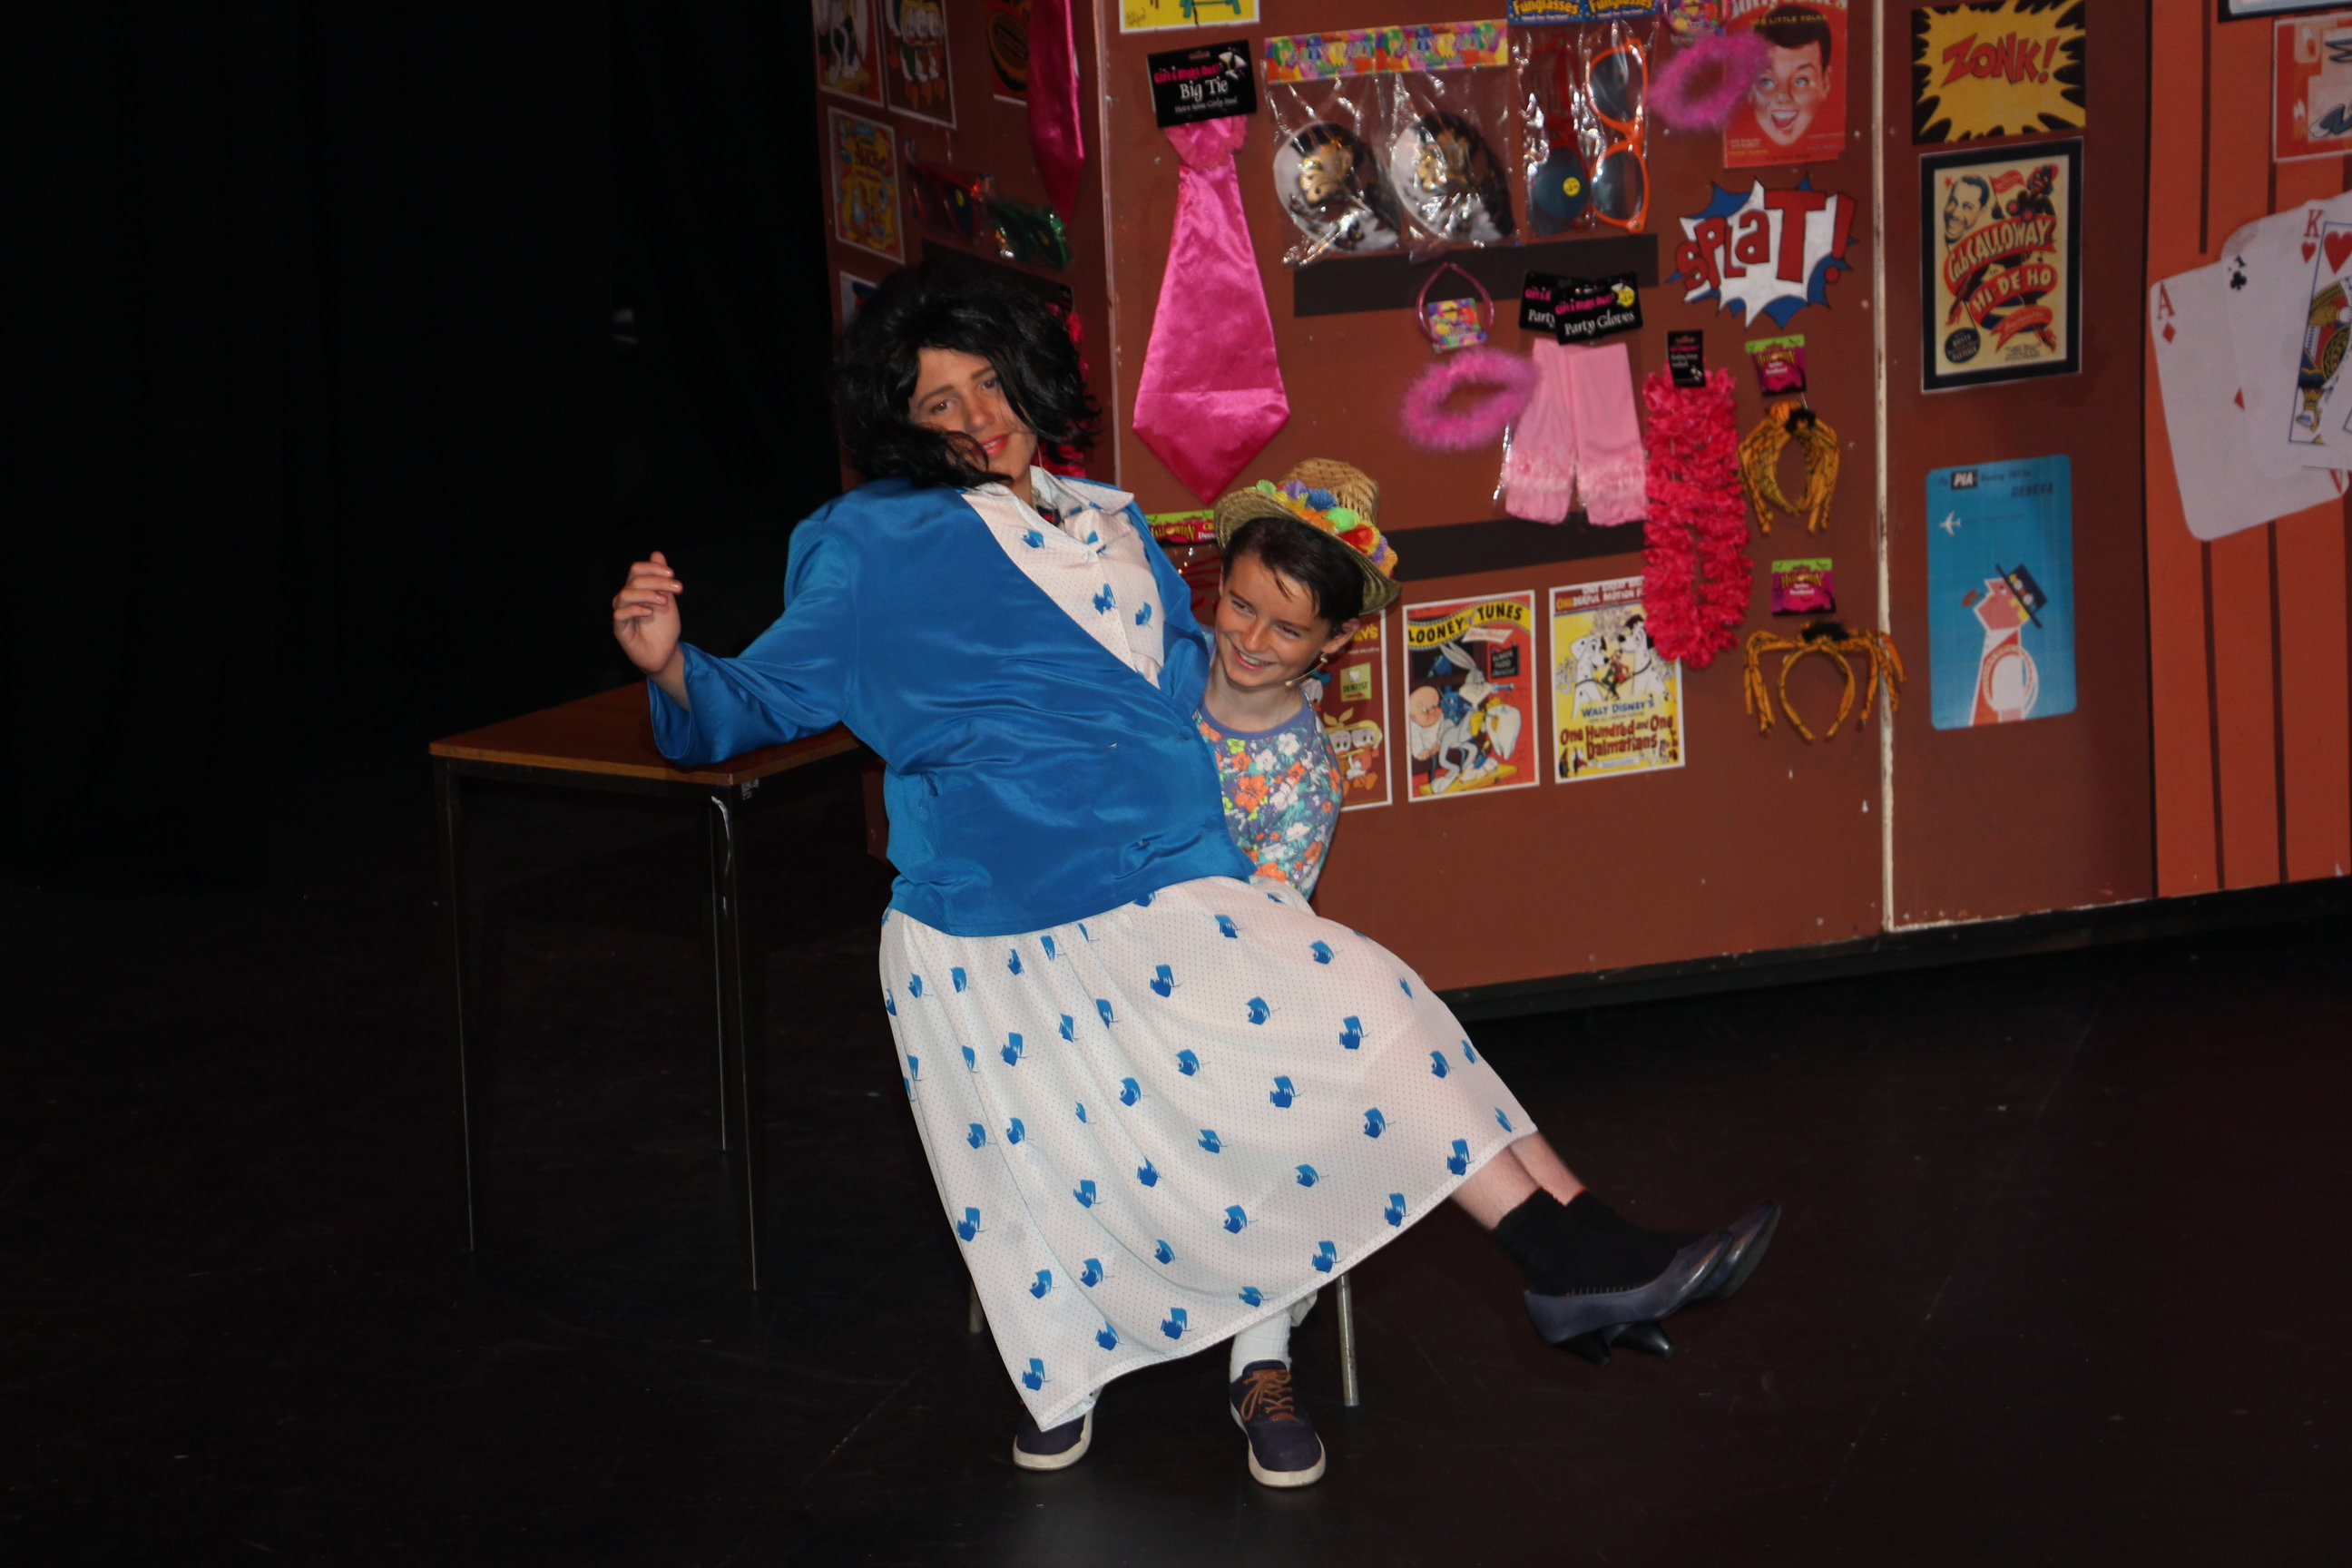 rsz perfect comic timing from sean egan as edna turnblad and michael lohan as wilbur turnblad